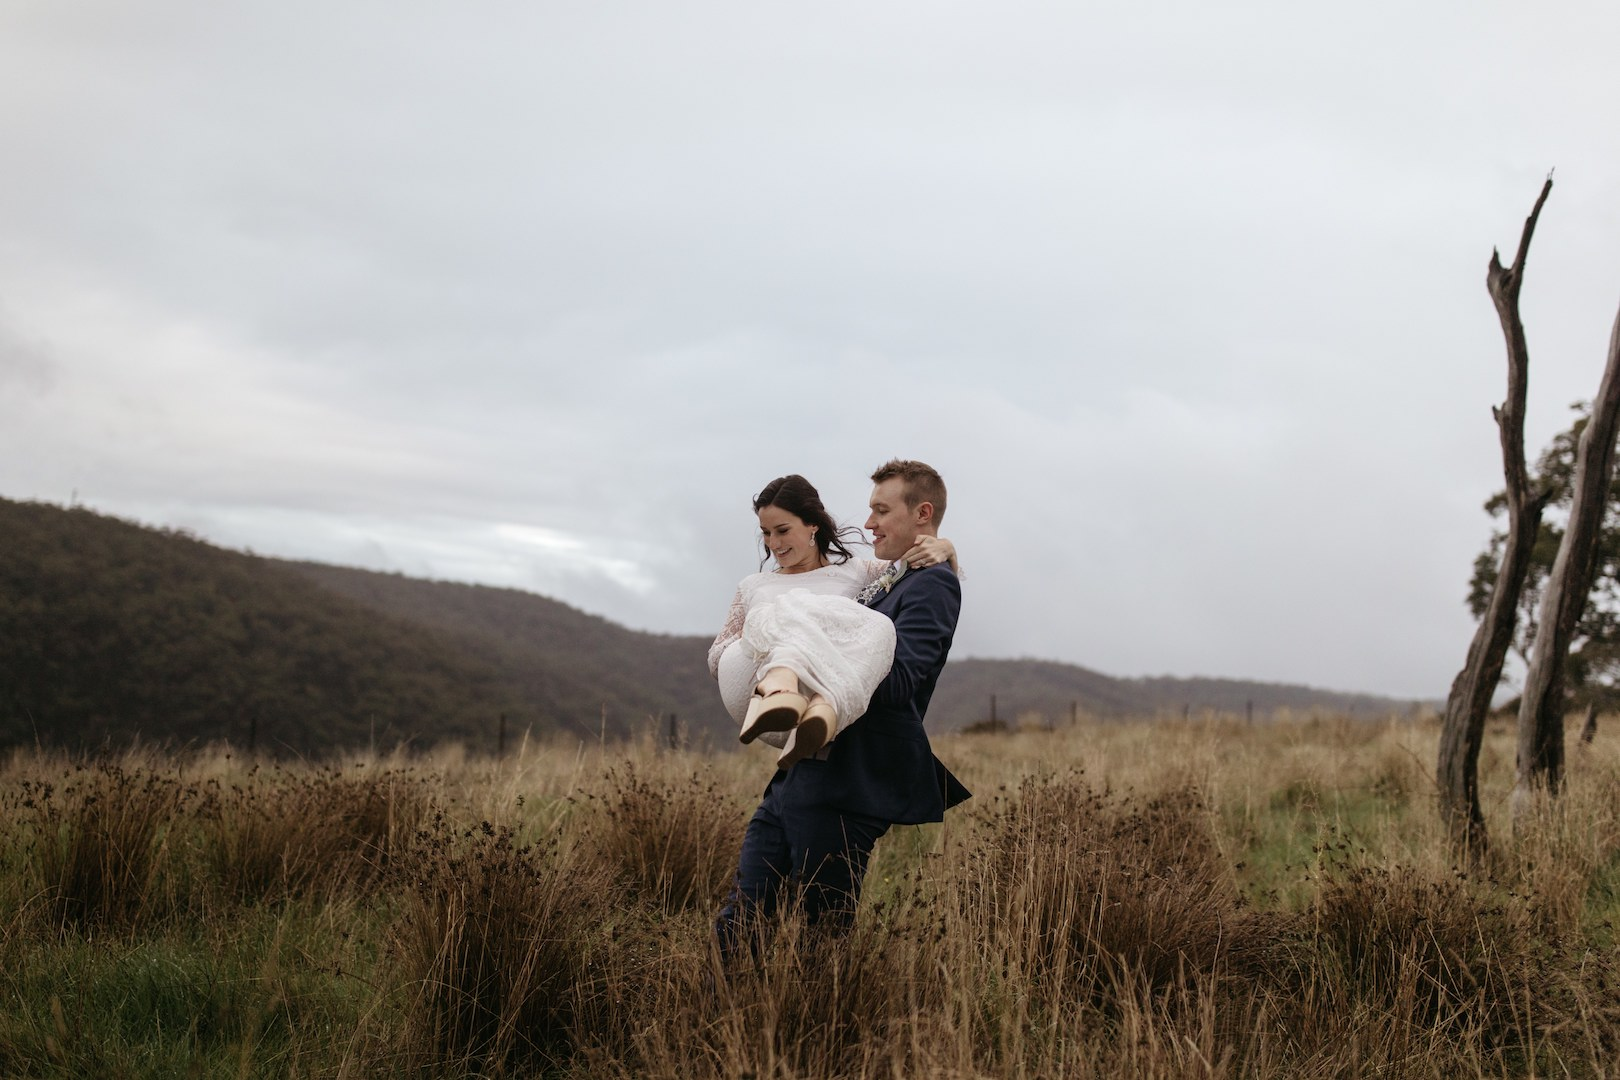 Emma+James-280resize.jpg